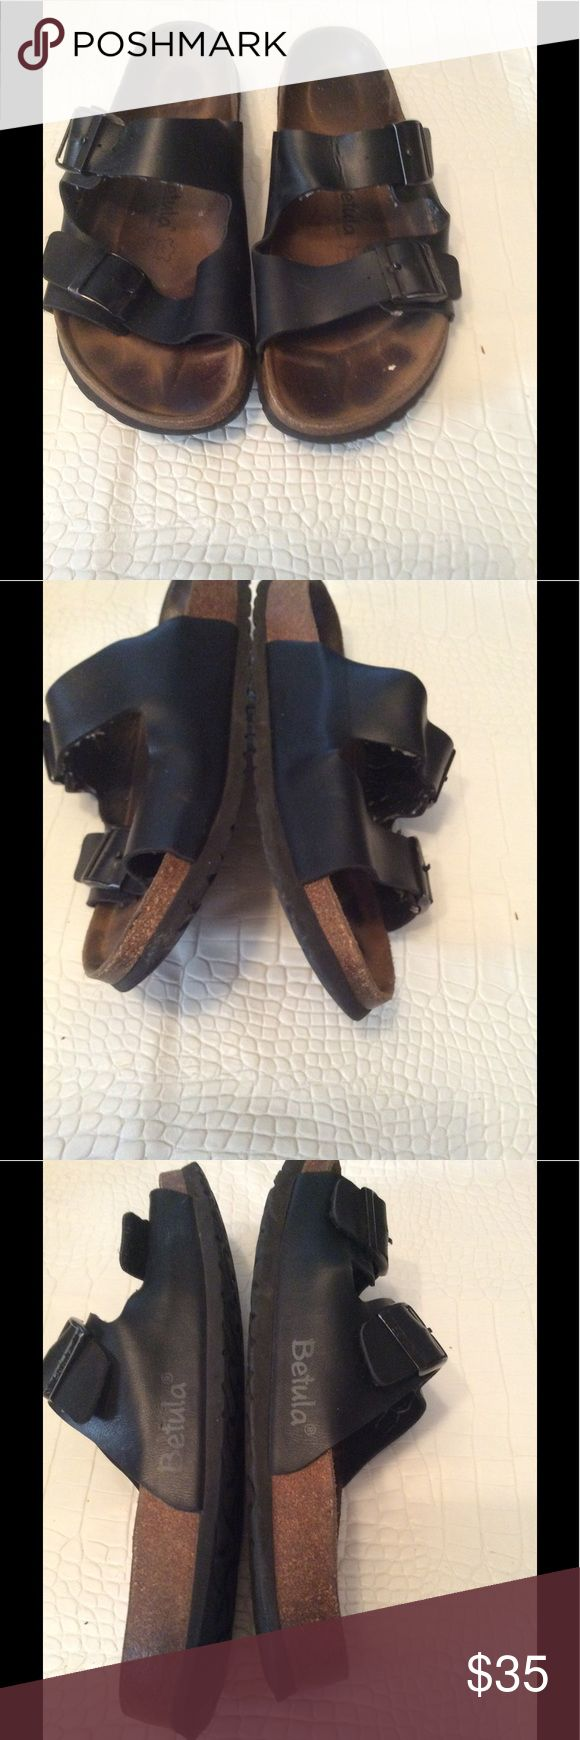 Betula sandals Preloved men betula sandals can use a cleaning otherwise good condition Birkenstock Shoes Sandals & Flip-Flops